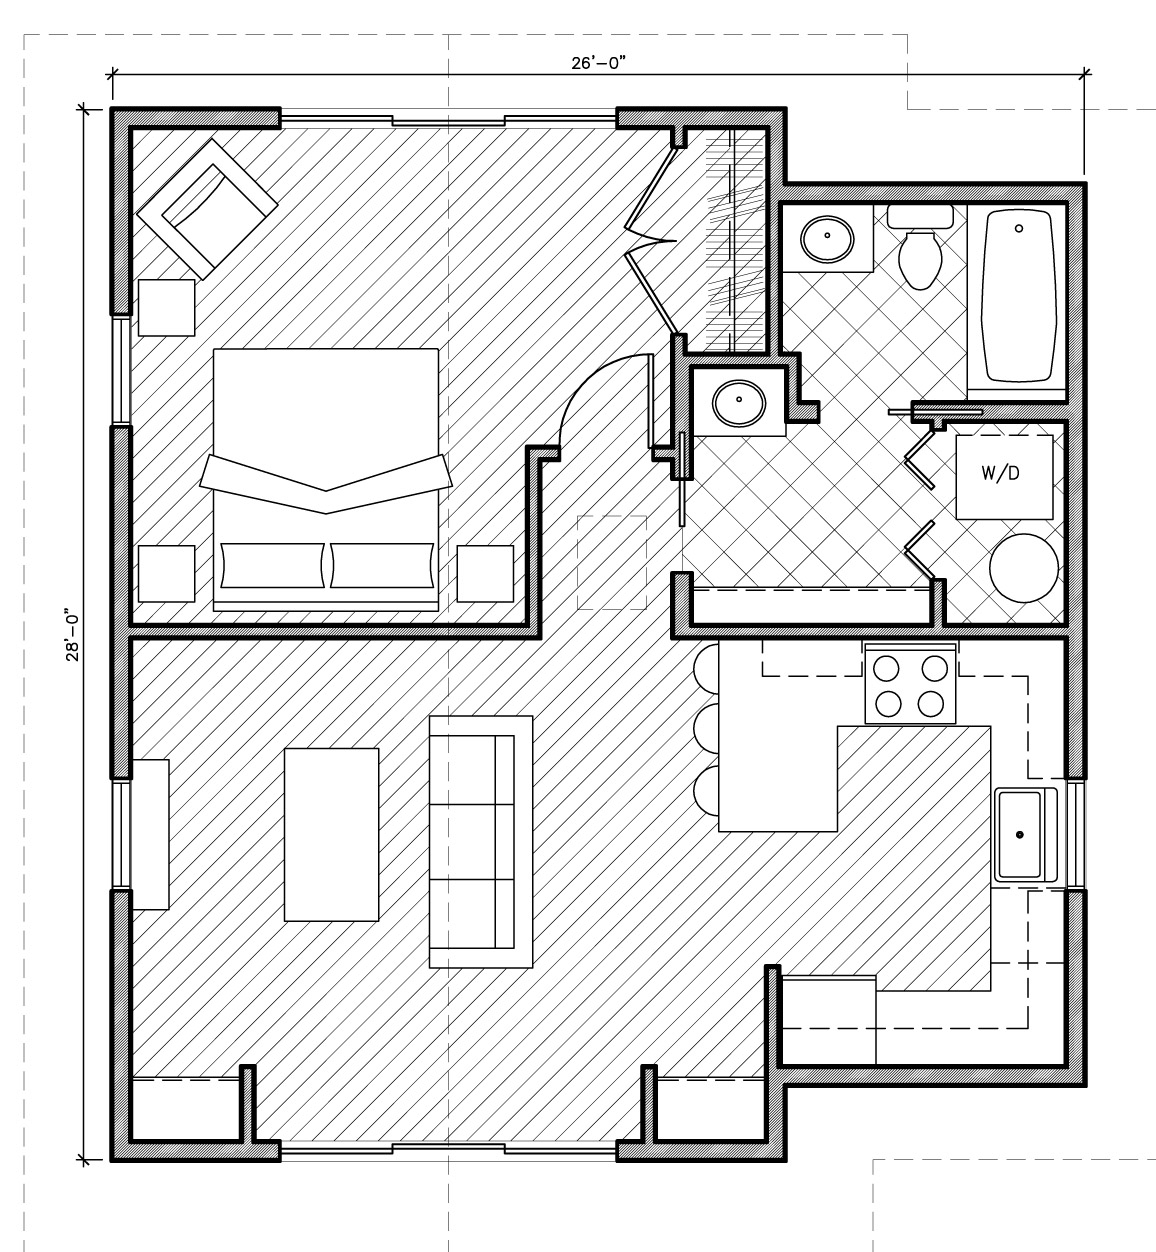 Design banter home plan collection for 1 bedroom floor plans